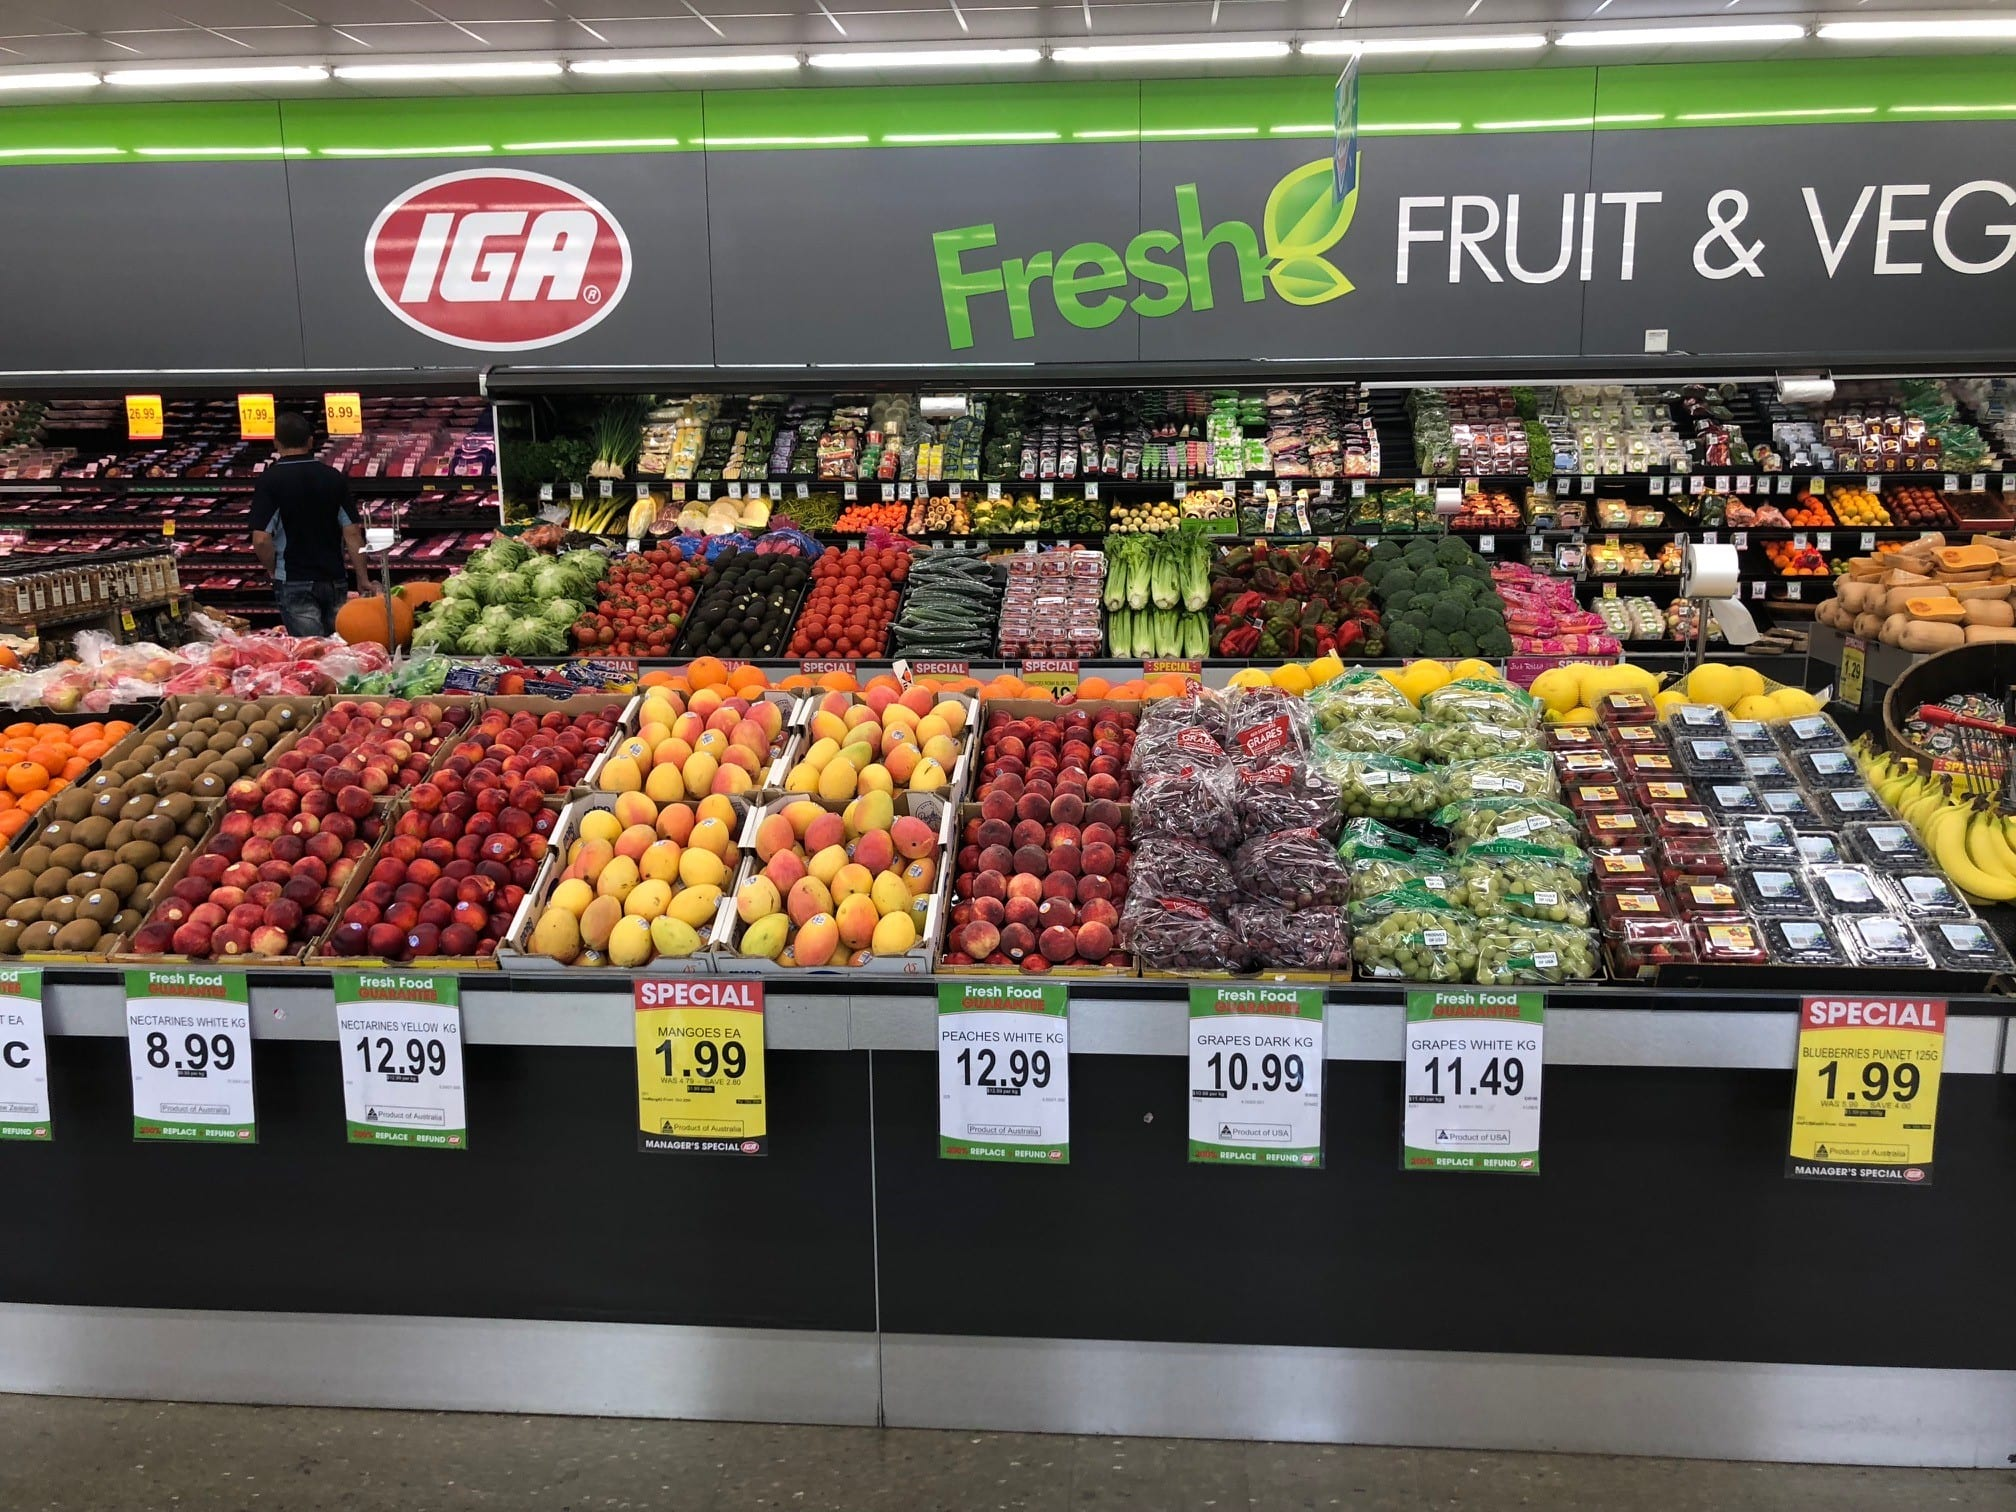 IGA Fresh - ins-store Fruit and Veg